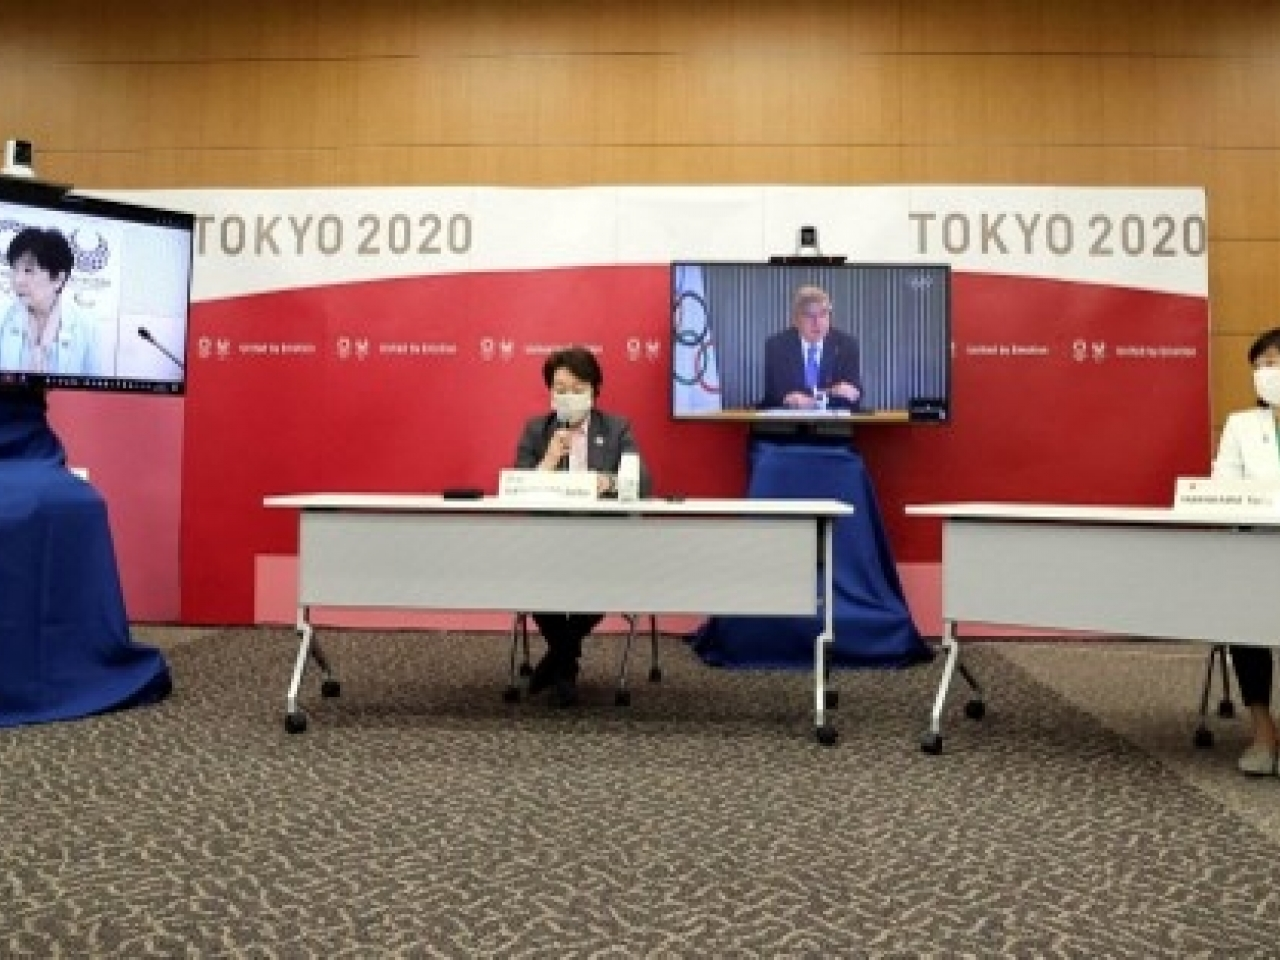 The decision was announced after five-way talks between Tokyo 2020 organisers and officials from Japan's government, the Tokyo government, the International Olympic Committee and the International Paralympic Committee. Photo: AFP